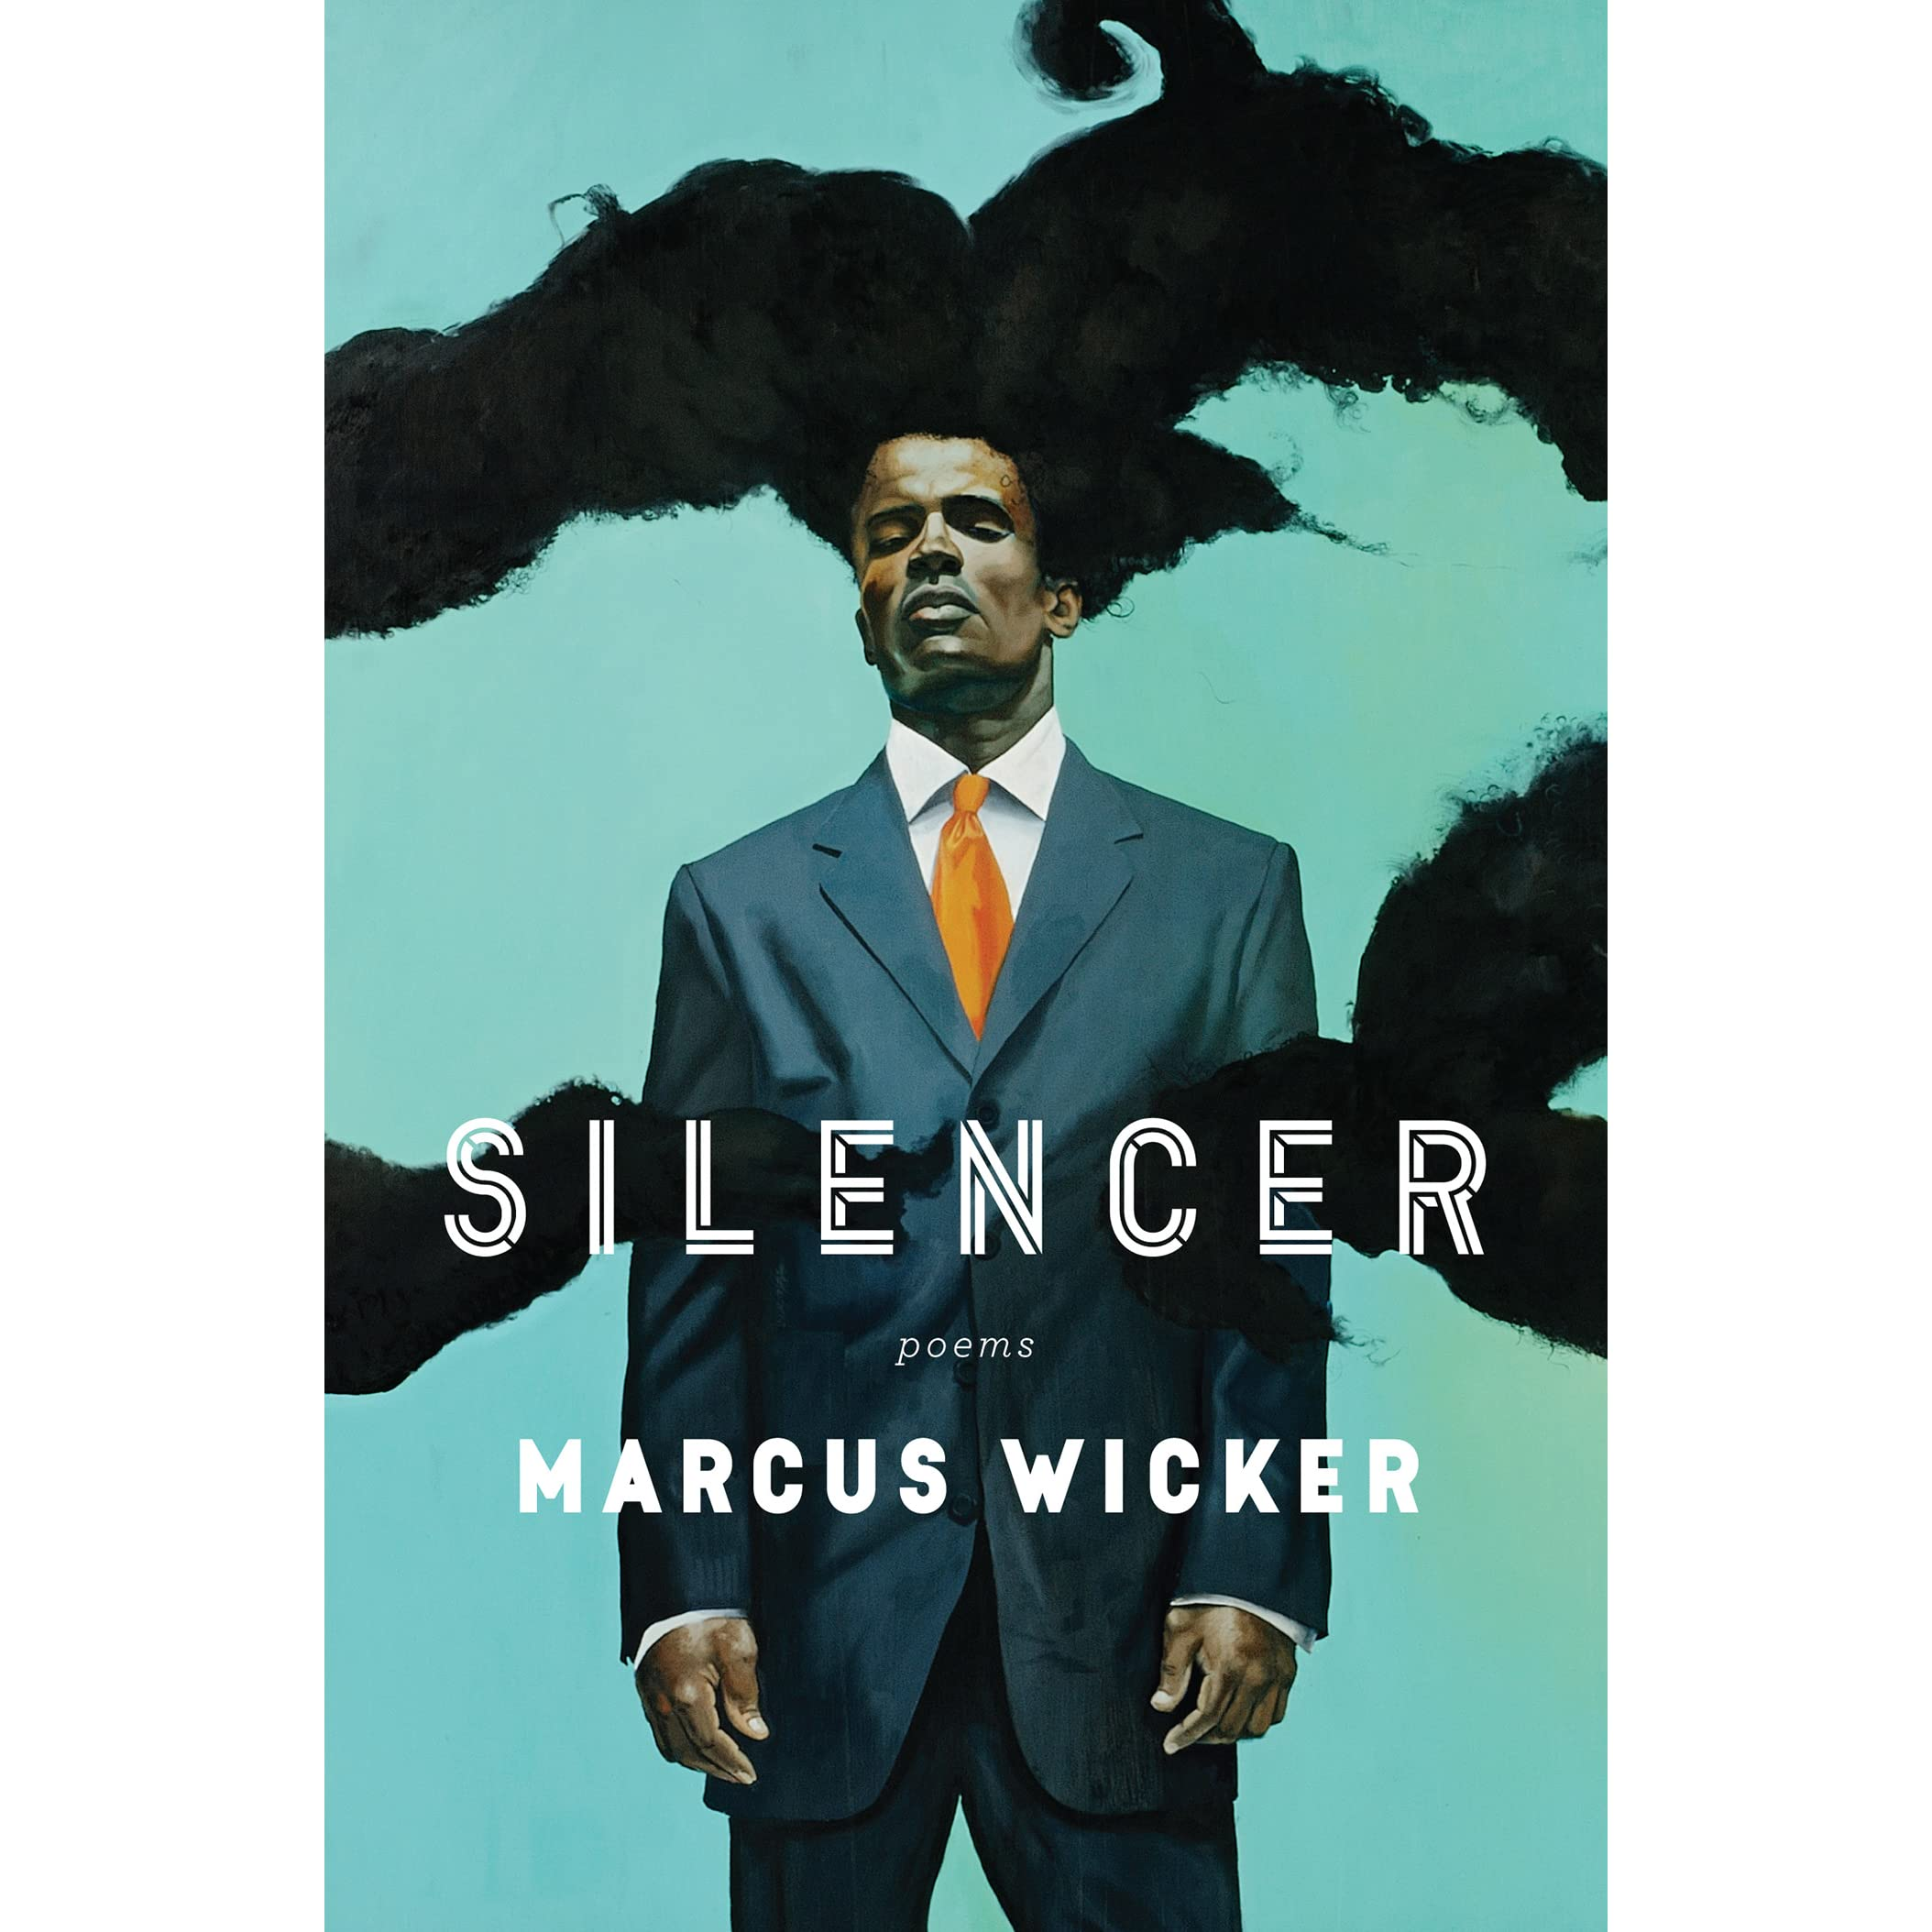 Image result for marcus wicker silencer